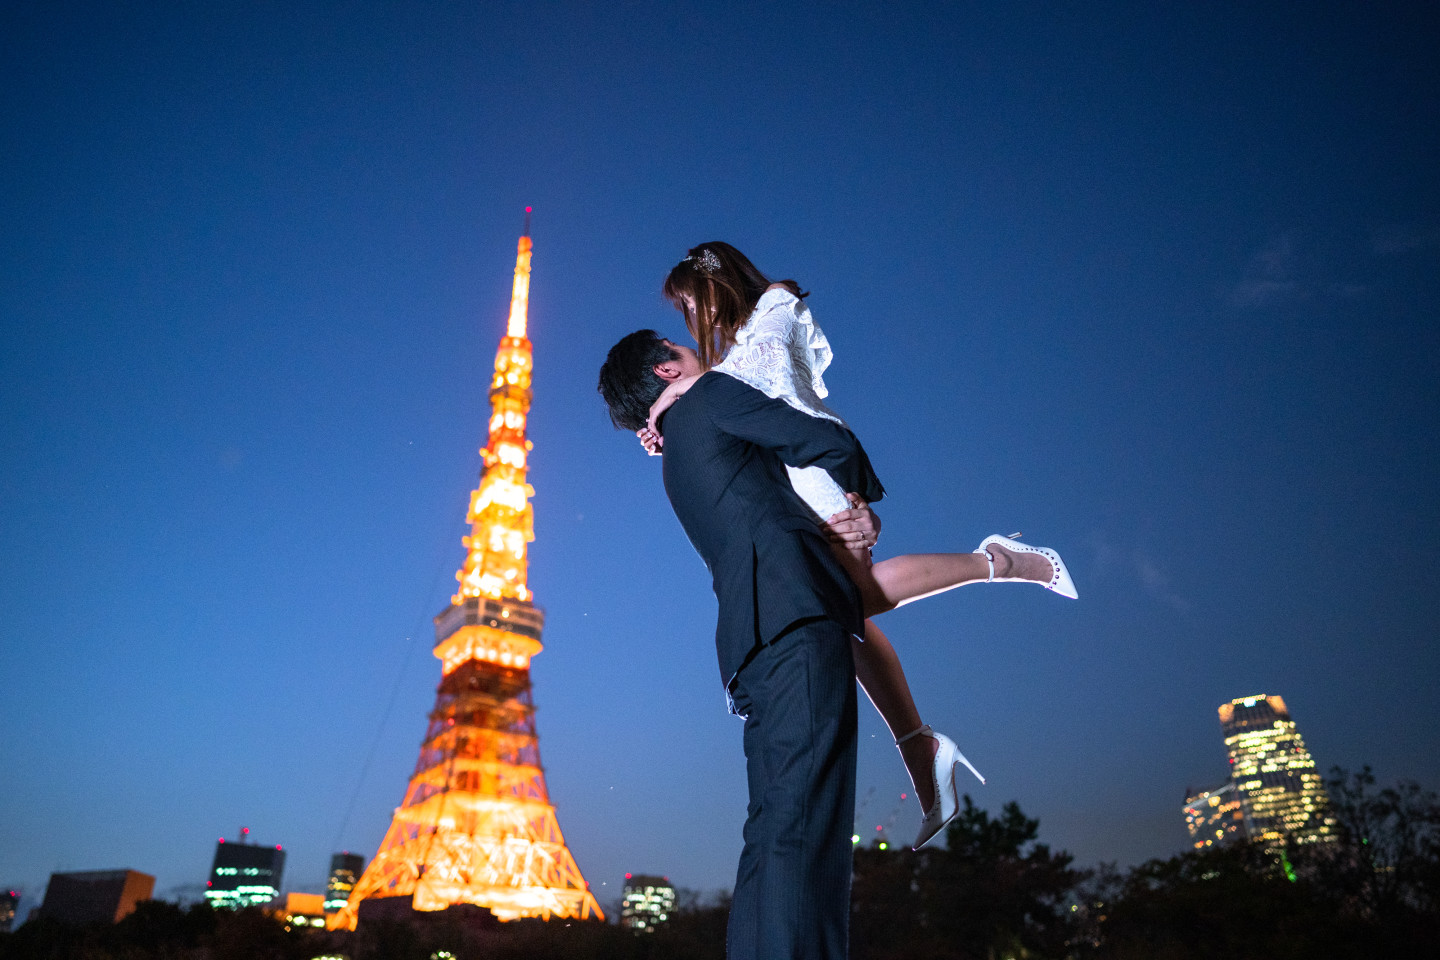 Natsumetic - A beautiful Tokyo Tower Photo in the early night (Famarry)